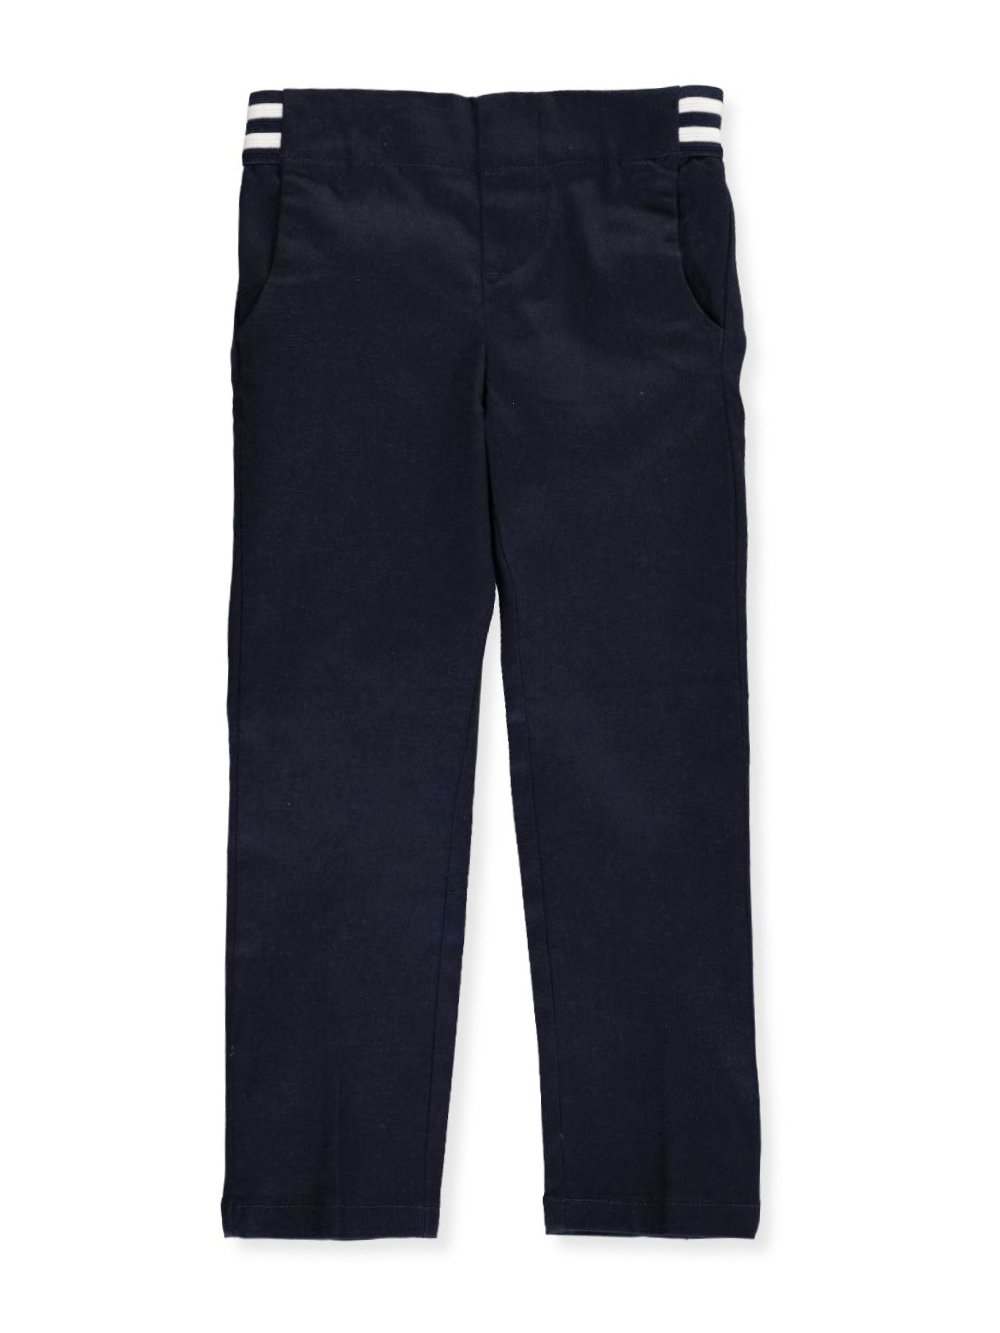 French Toast Little Girls' Pull-On Contrast Waist Pants